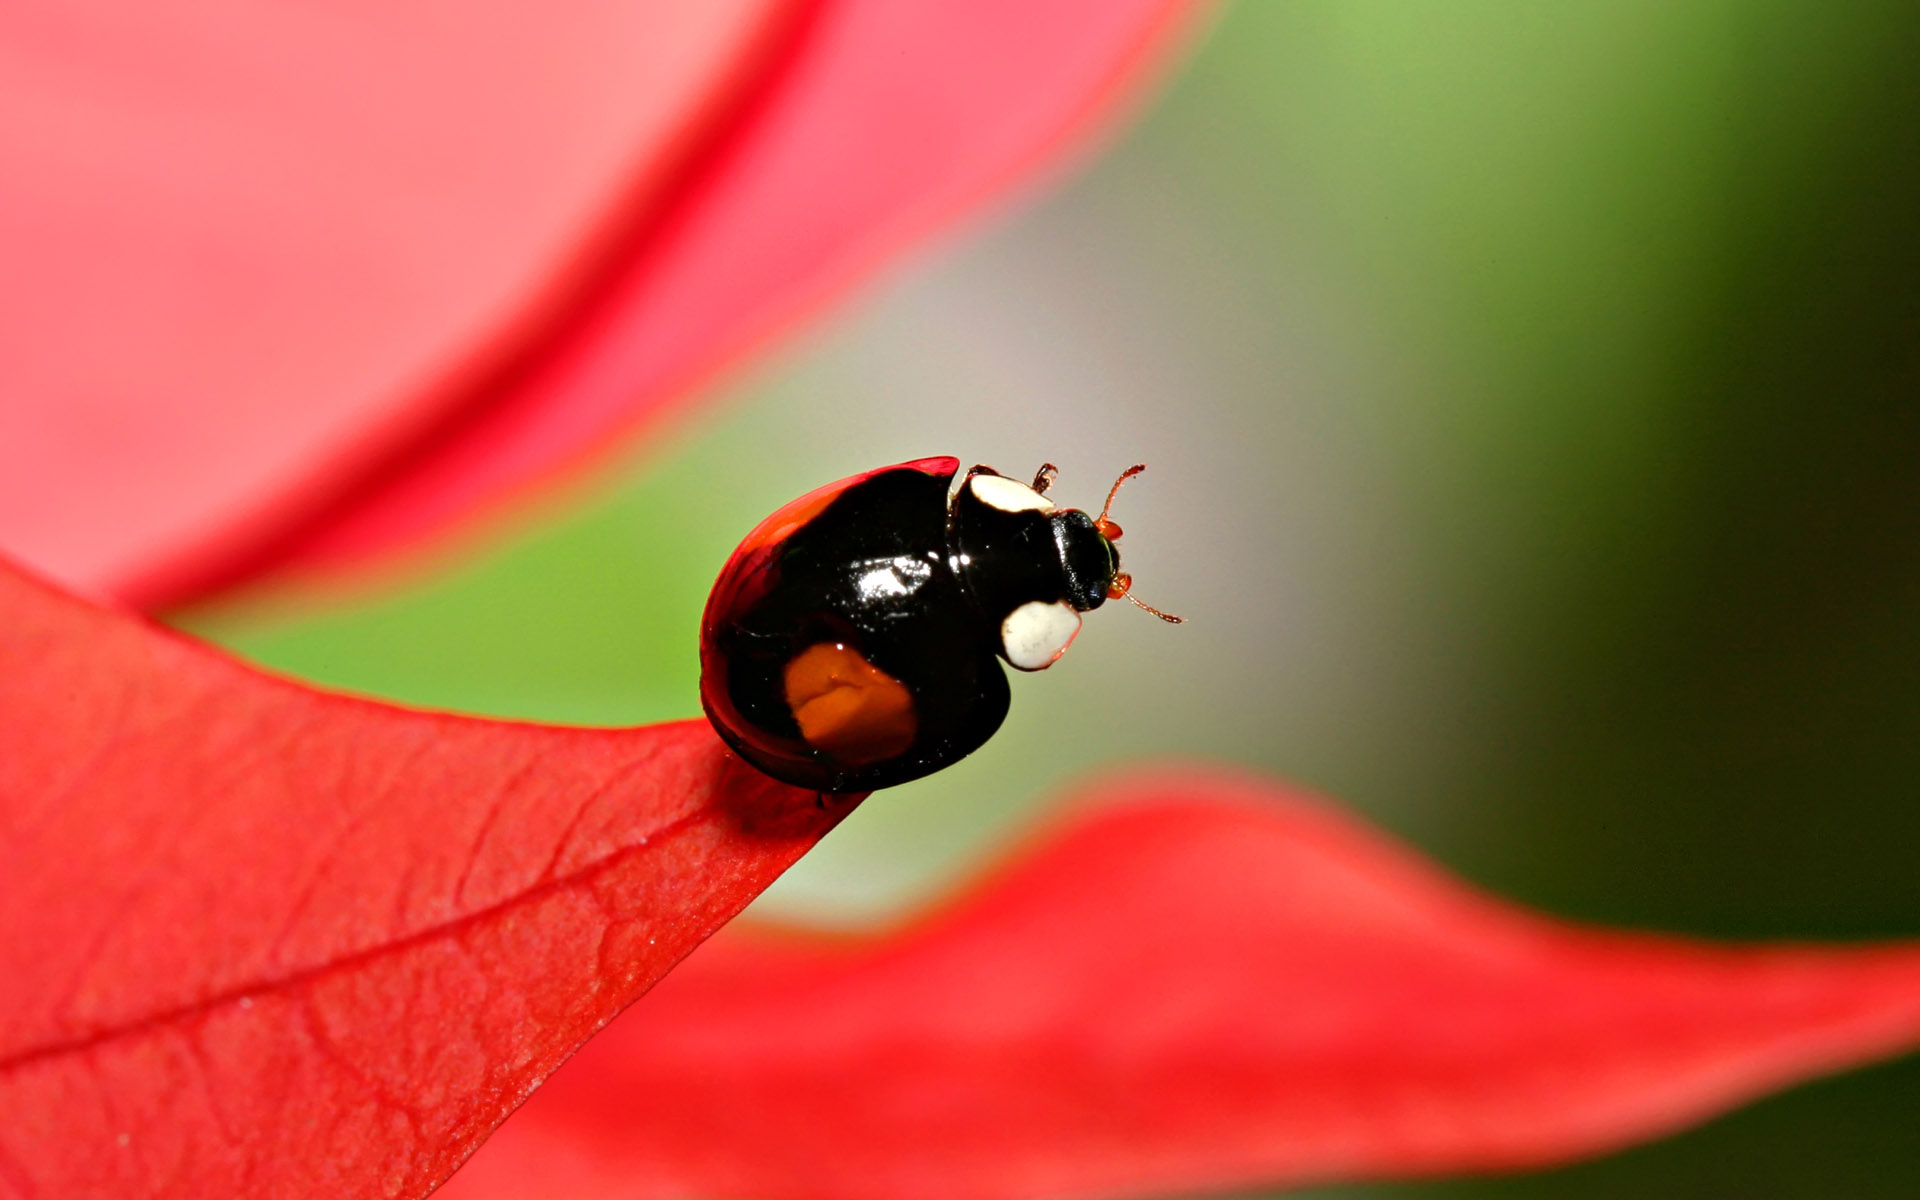 Widescreen insect photo material 4121